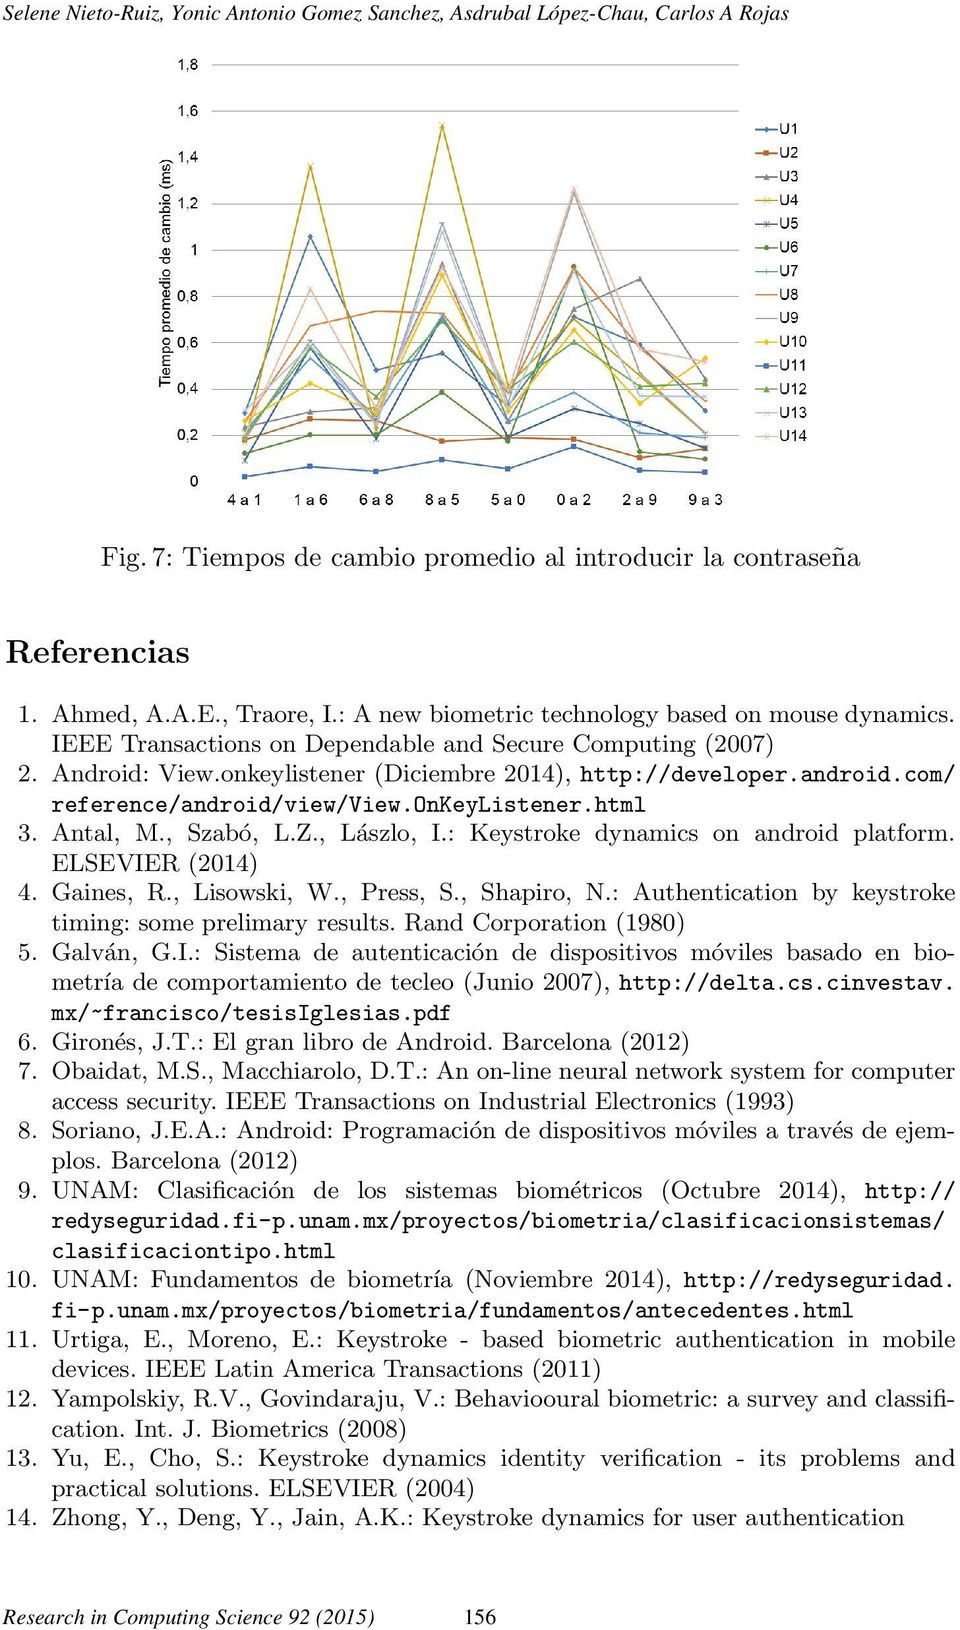 com/ reference/android/view/view.onkeylistener.html 3. Antal, M., Szabó, L.Z., Lászlo, I.: Keystroke dynamics on android platform. ELSEVIER (2014) 4. Gaines, R., Lisowski, W., Press, S., Shapiro, N.